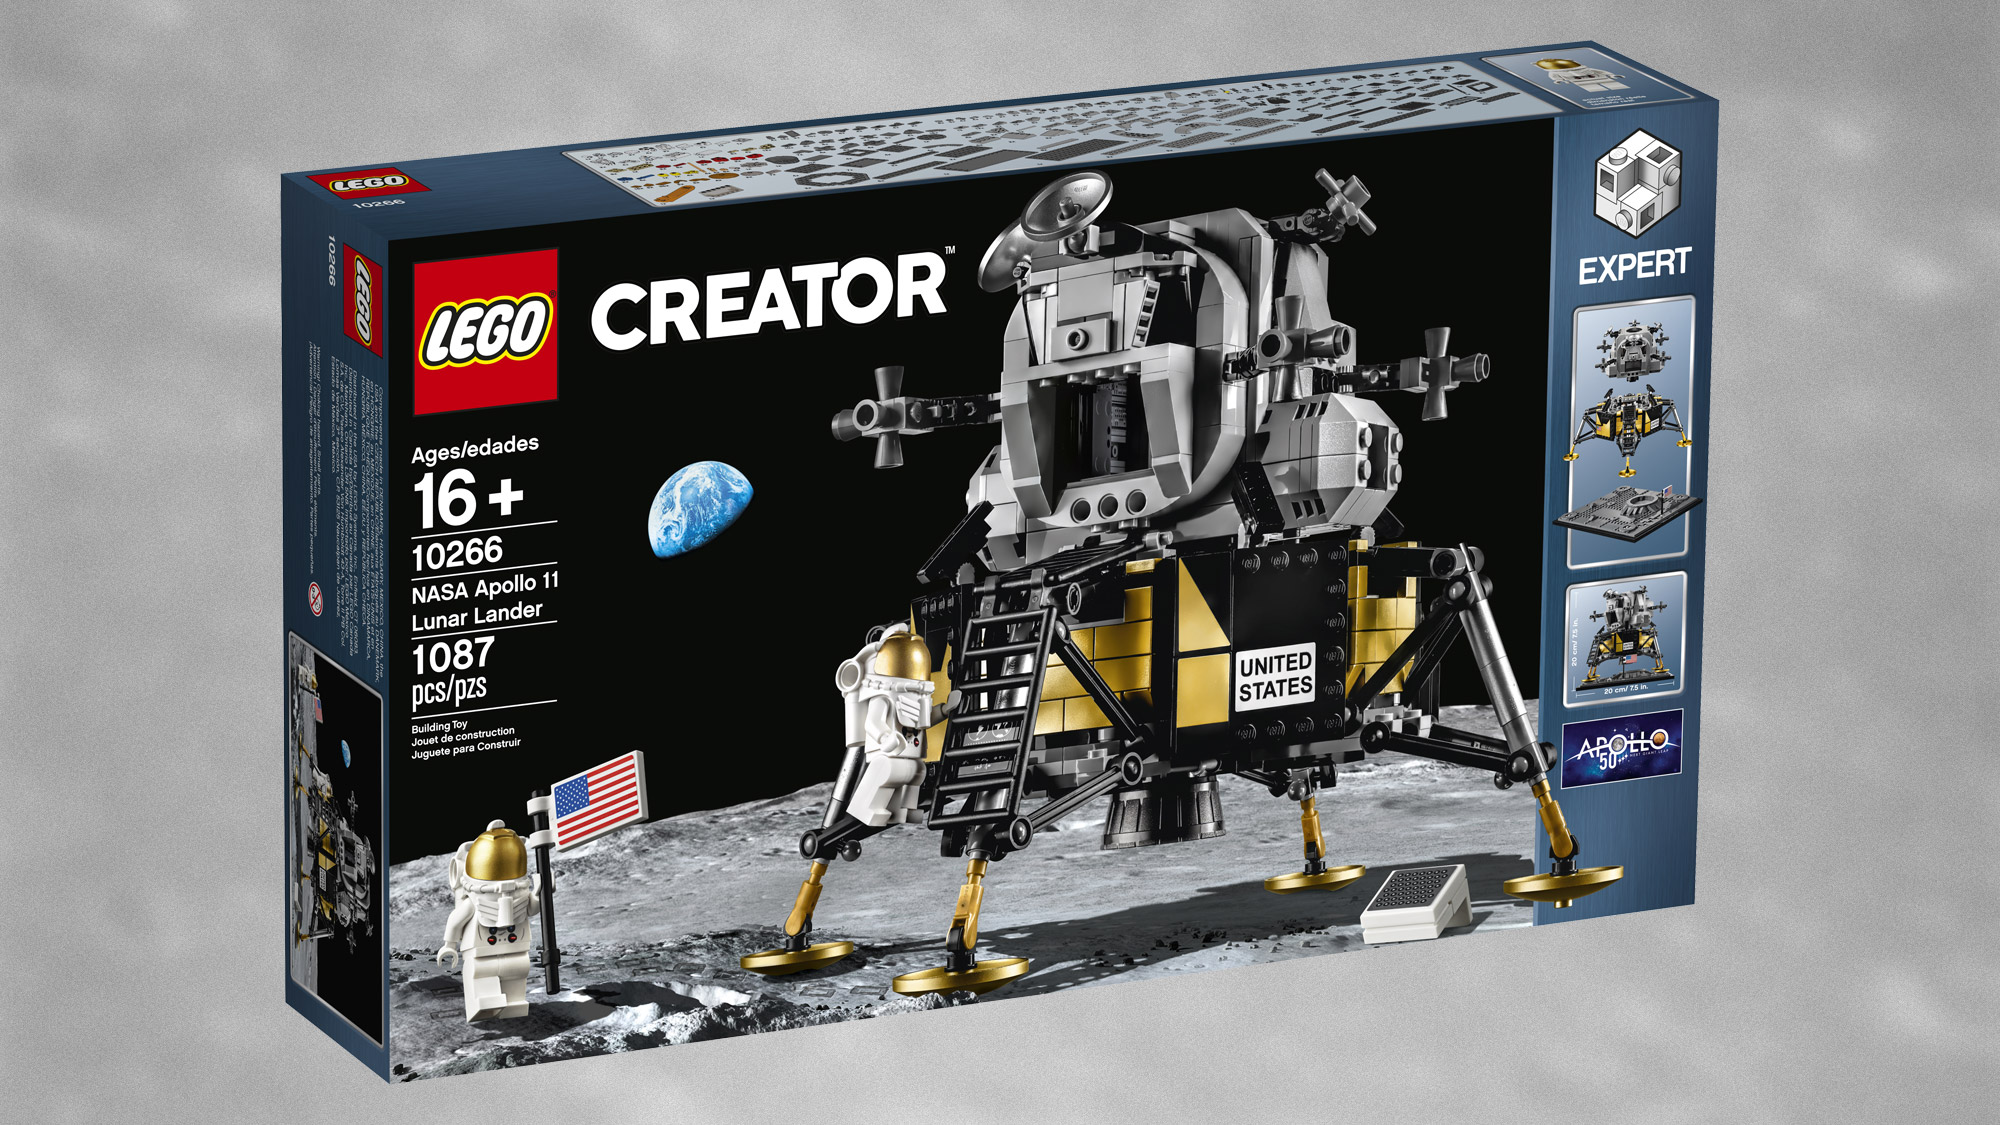 Lego's Epic Apollo 11 Lunar Lander Set in Photos | Space